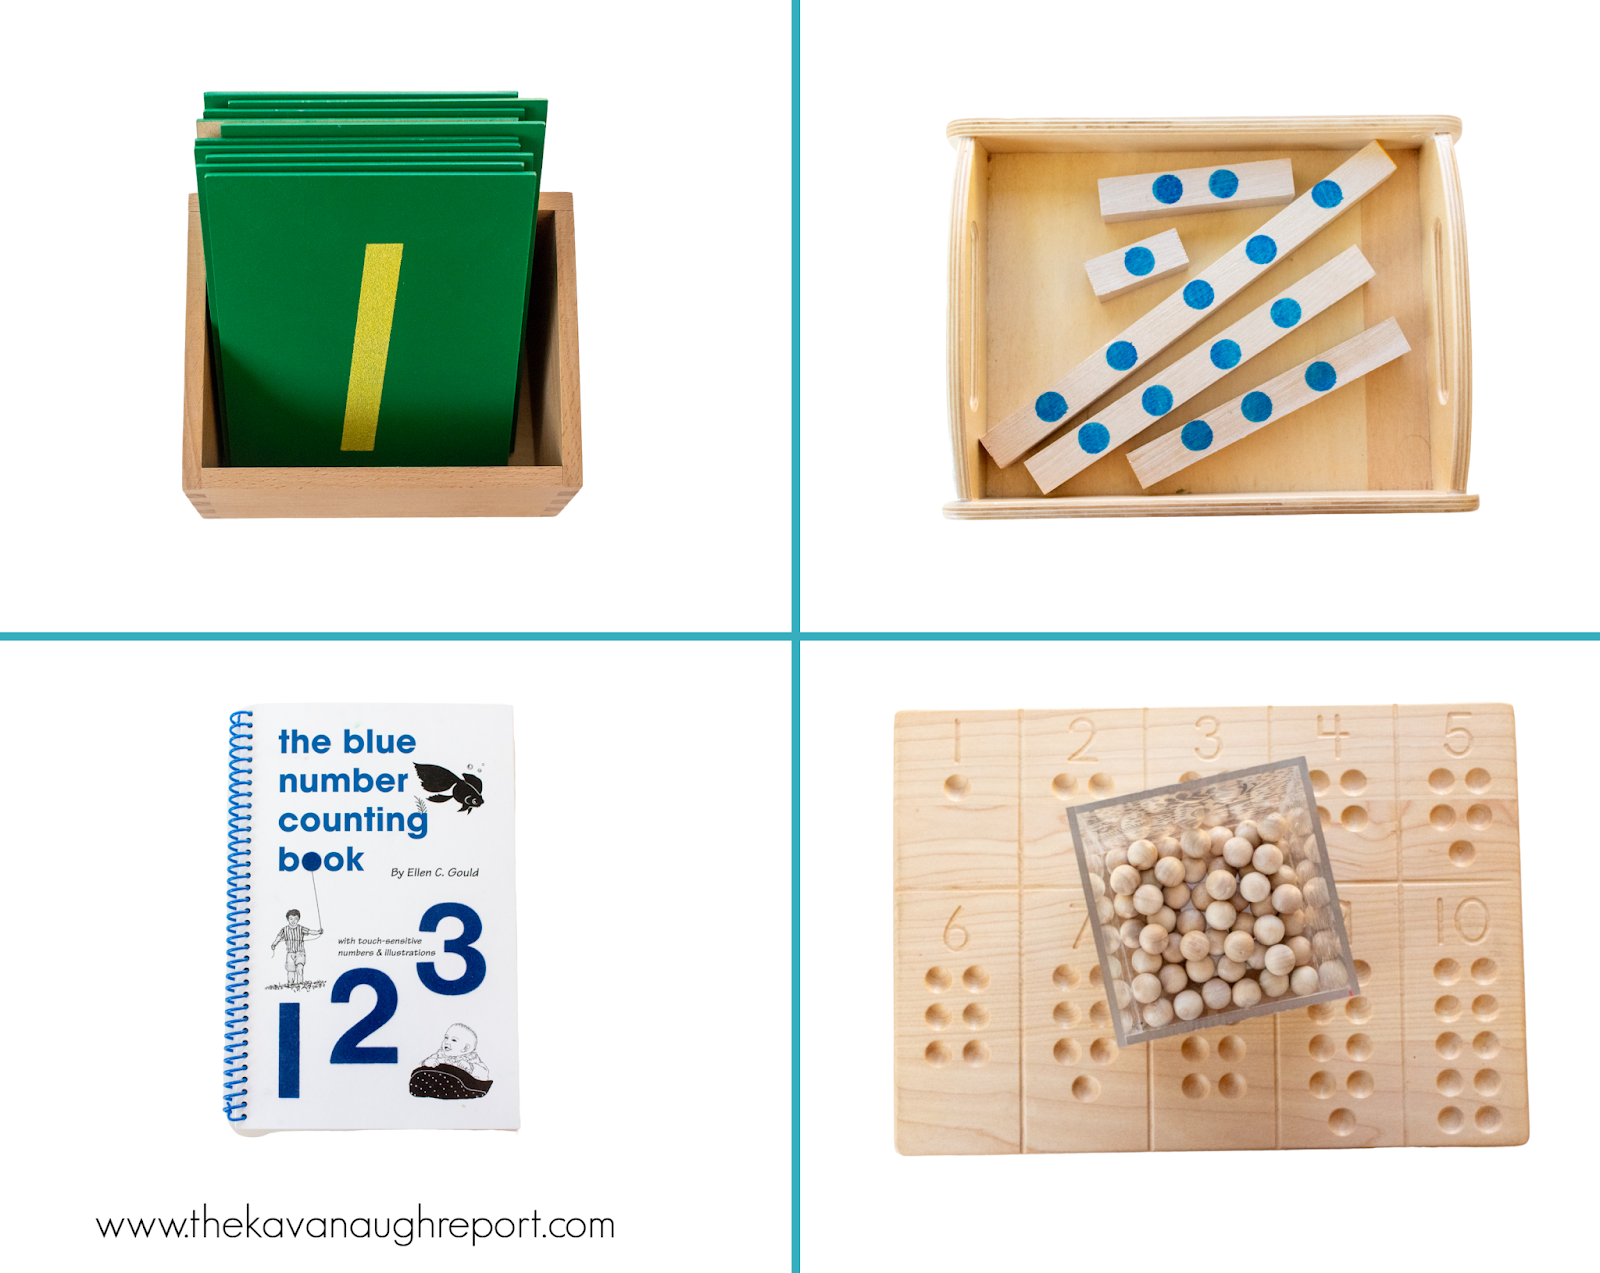 Here is a detailed look at the Montessori activities on a 3-year0old shelf at home. These toys and materials are great for learning a variety of skills including math, language, and science.